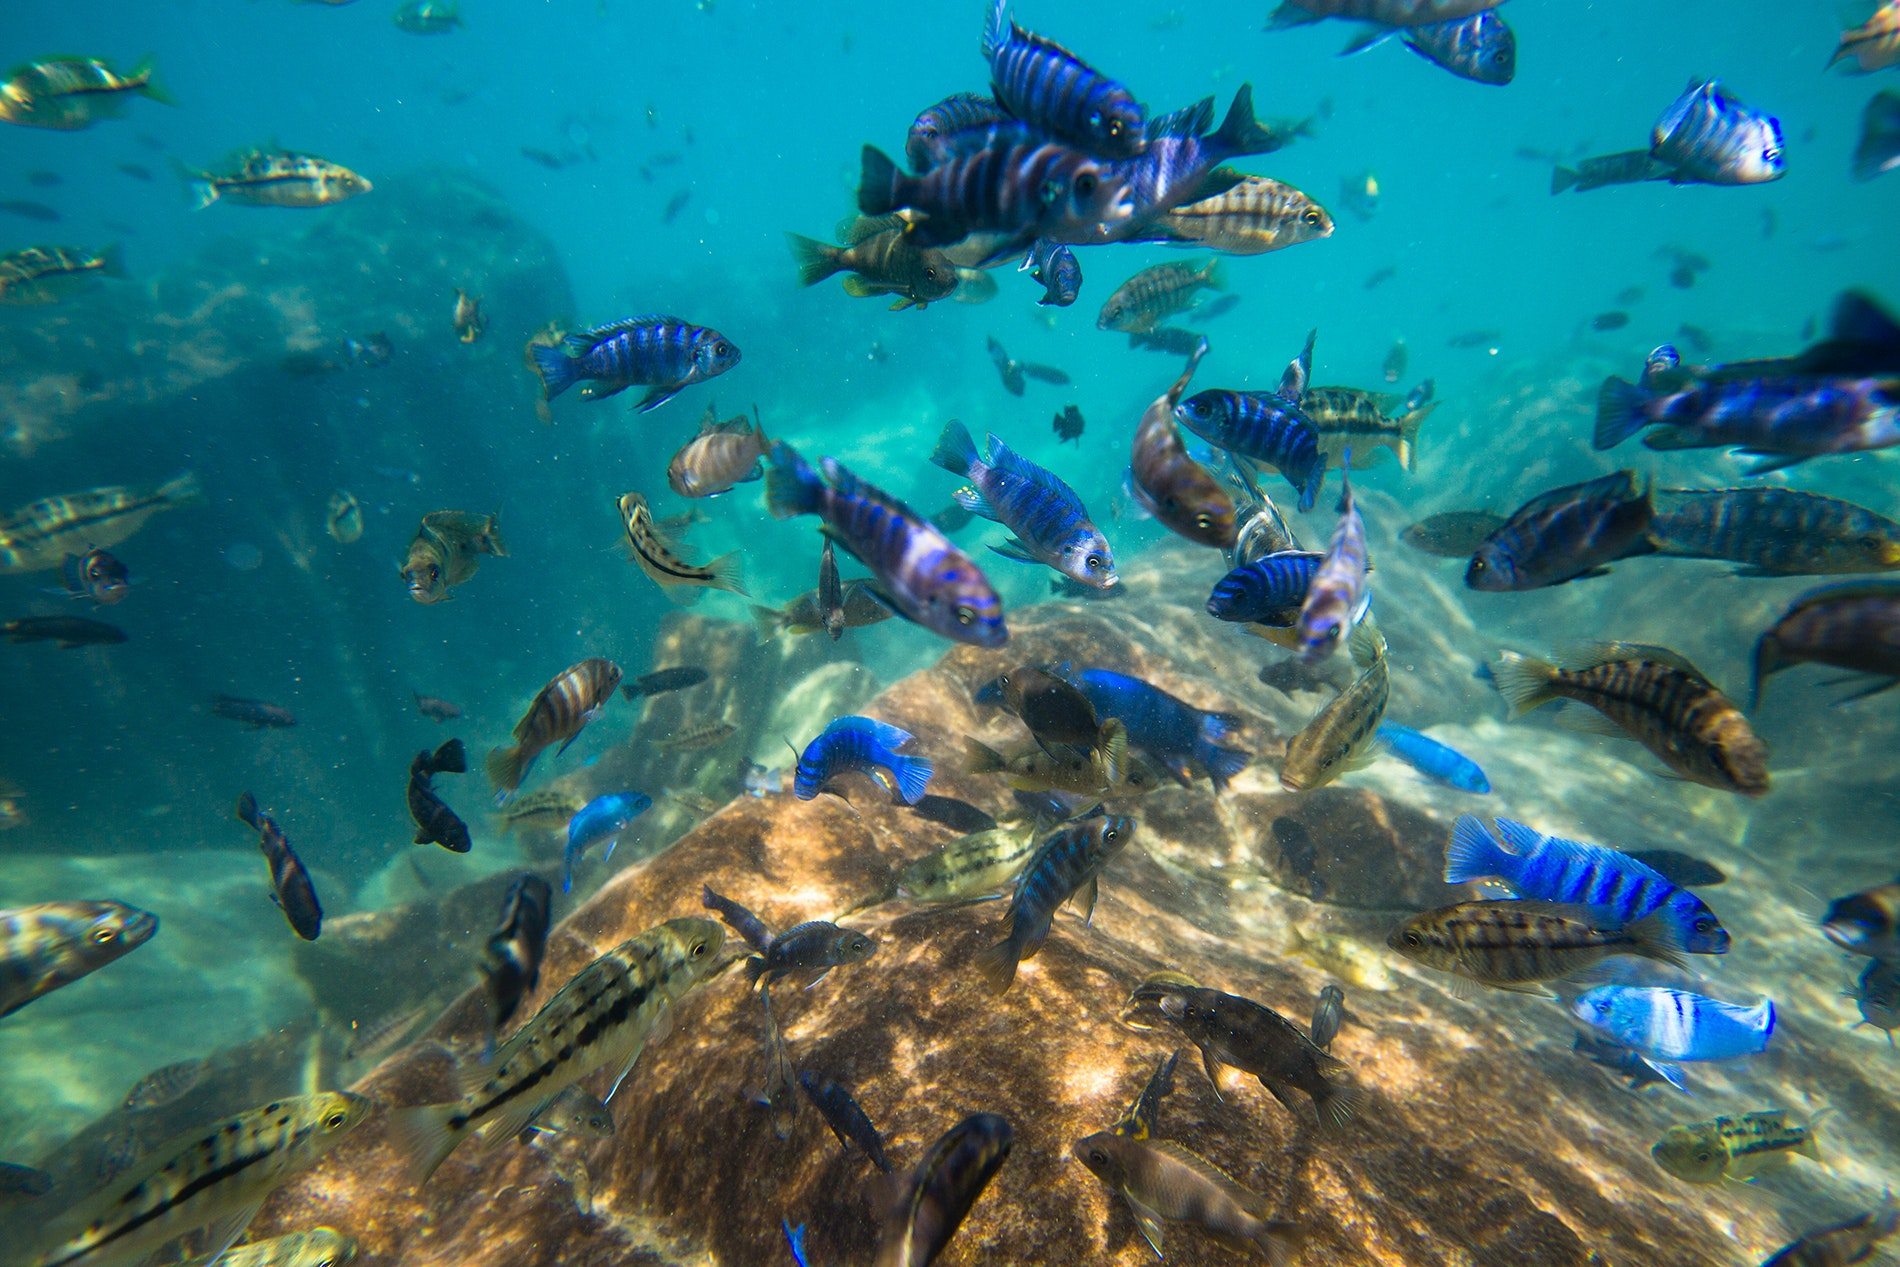 The 1,000 subspecies of African cichlid in Lake Malawi are all distinct, but the Blue Zebra is the most recognizable.